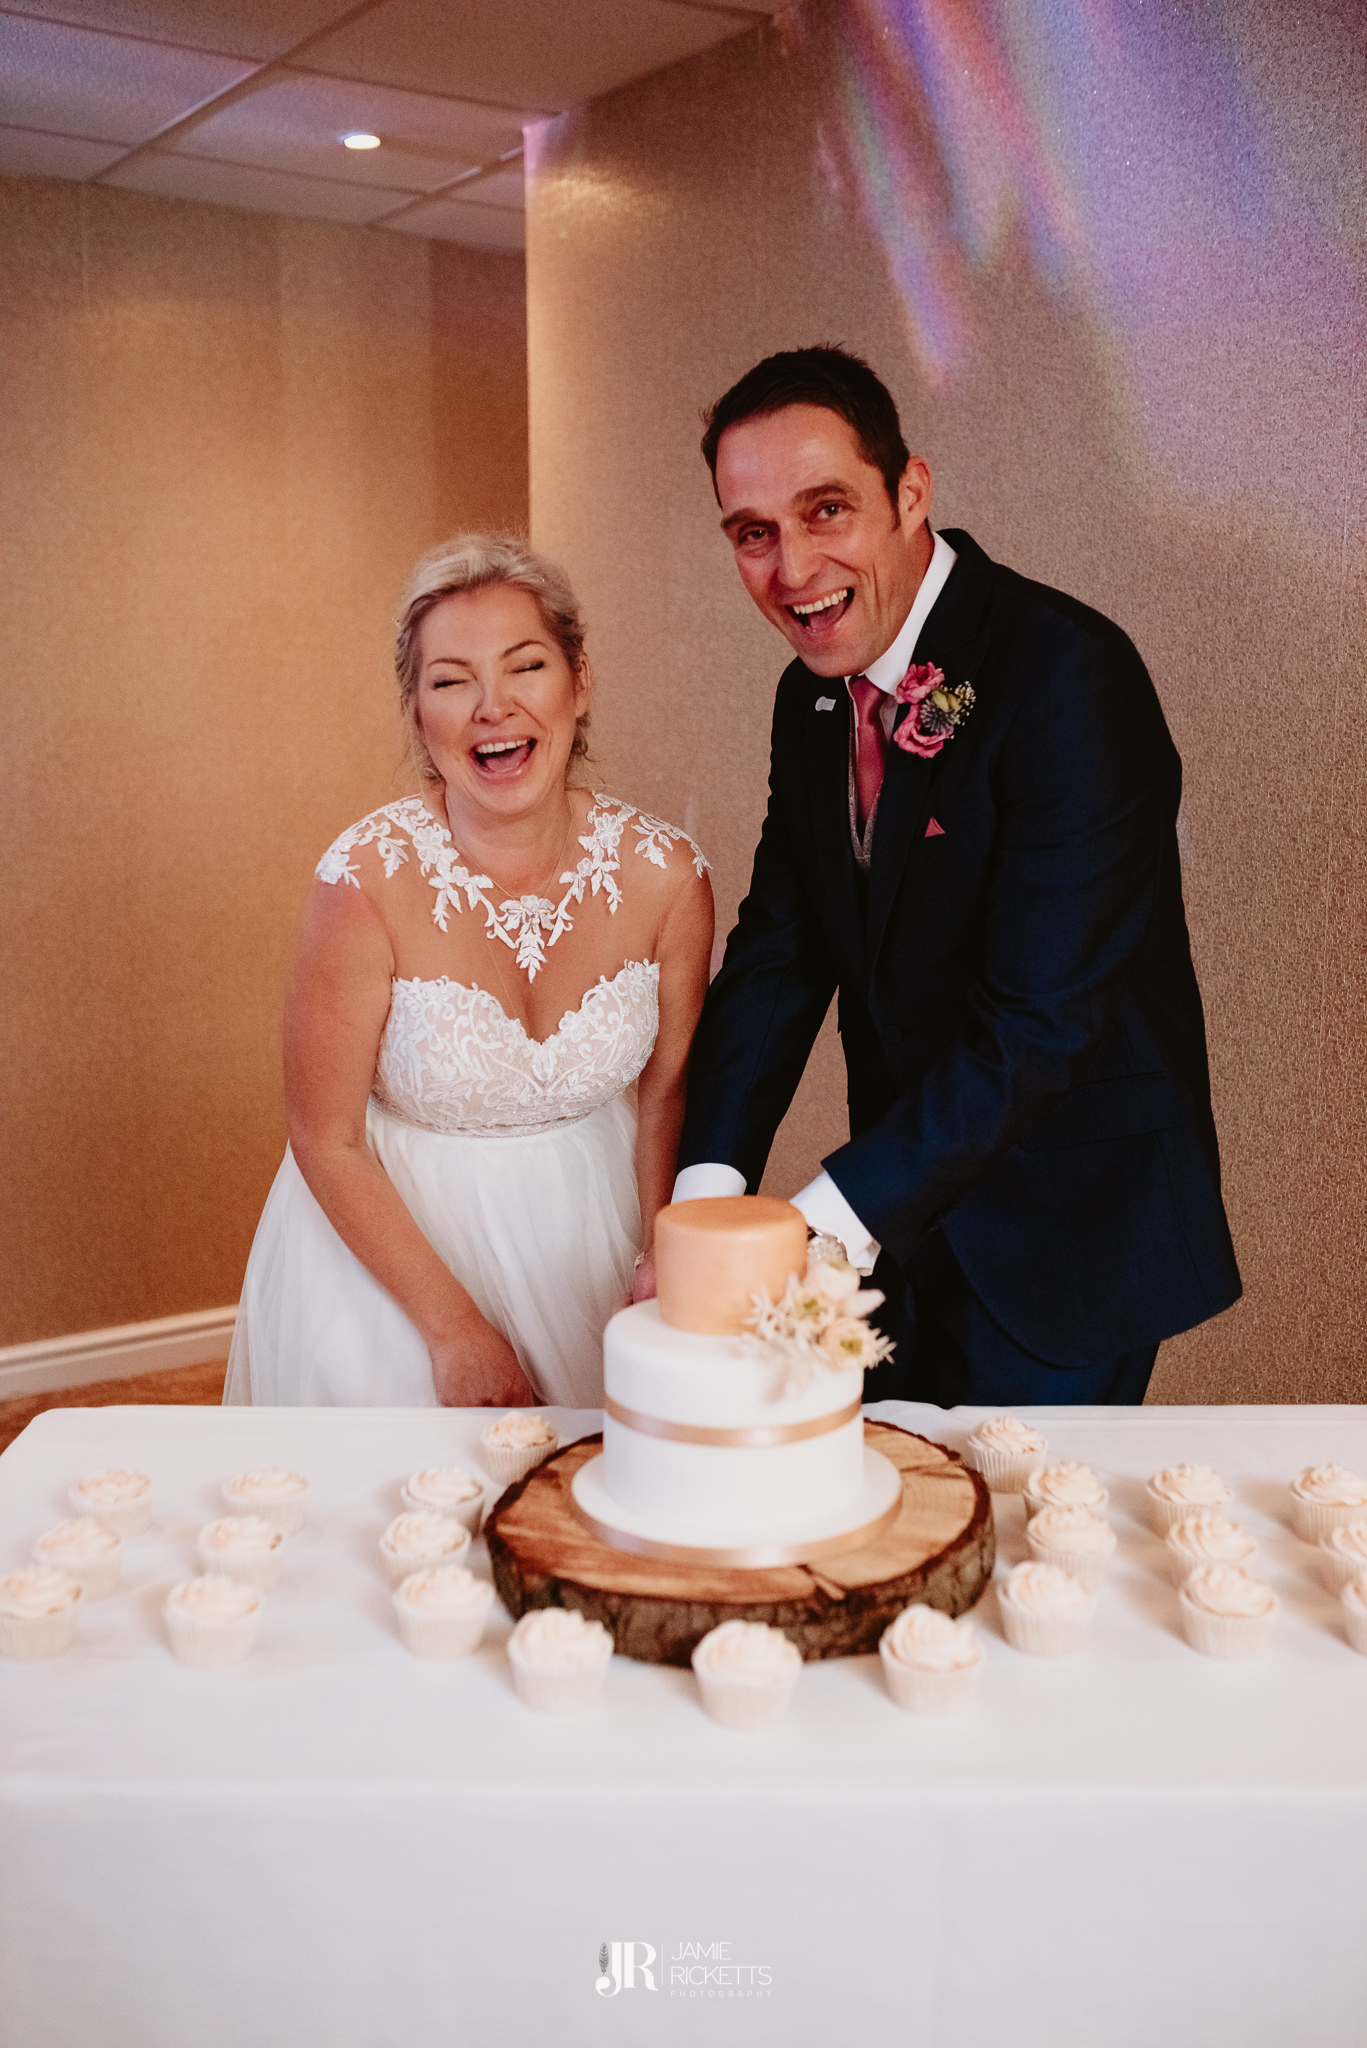 Wroxeter-Hotel-Wedding-Photography-In-Shropshire-By-Shropshire-Wedding-Photographer-Jamie-Ricketts-209.JPG